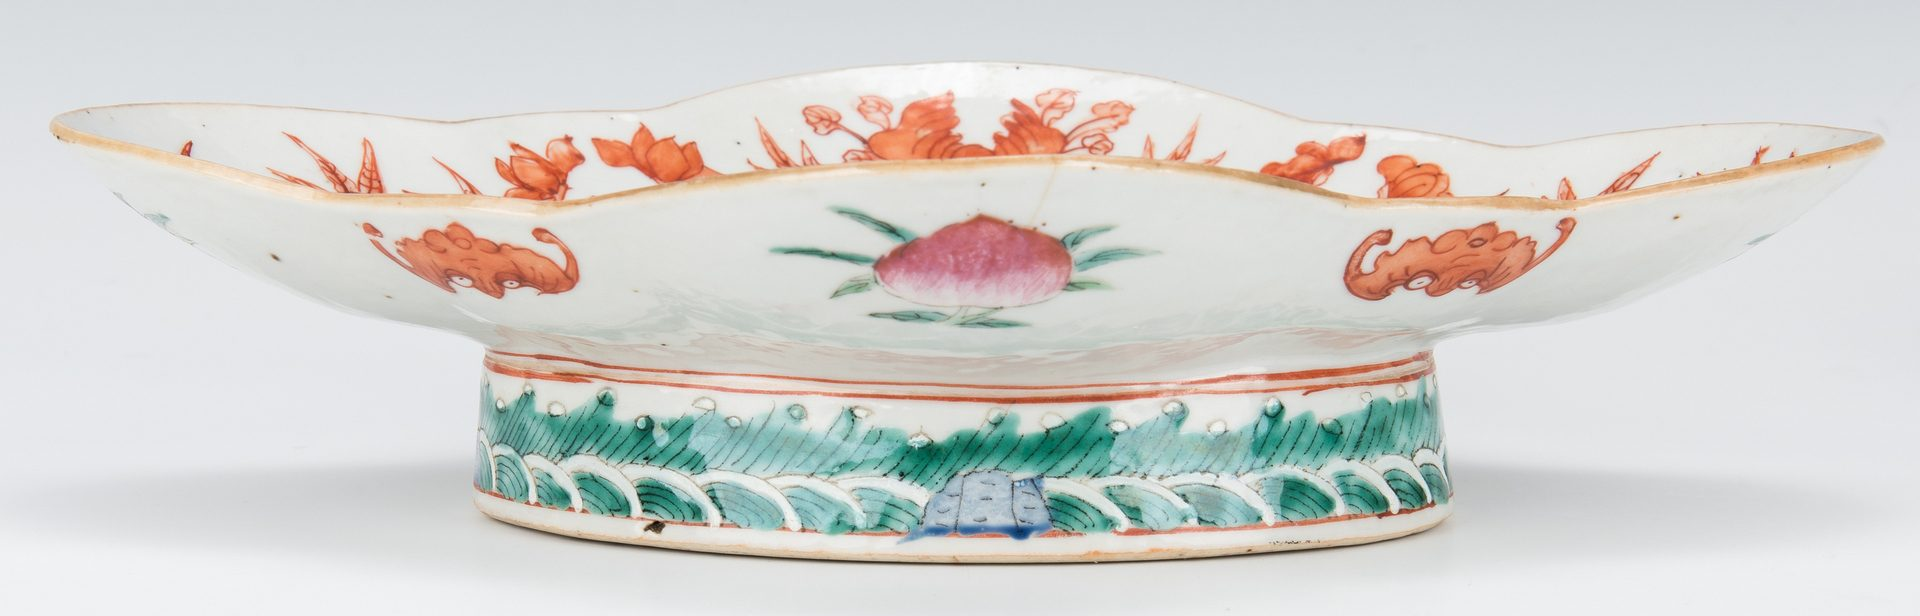 Lot 458: Pr. Chinese Famille Verte Porcelain Dishes